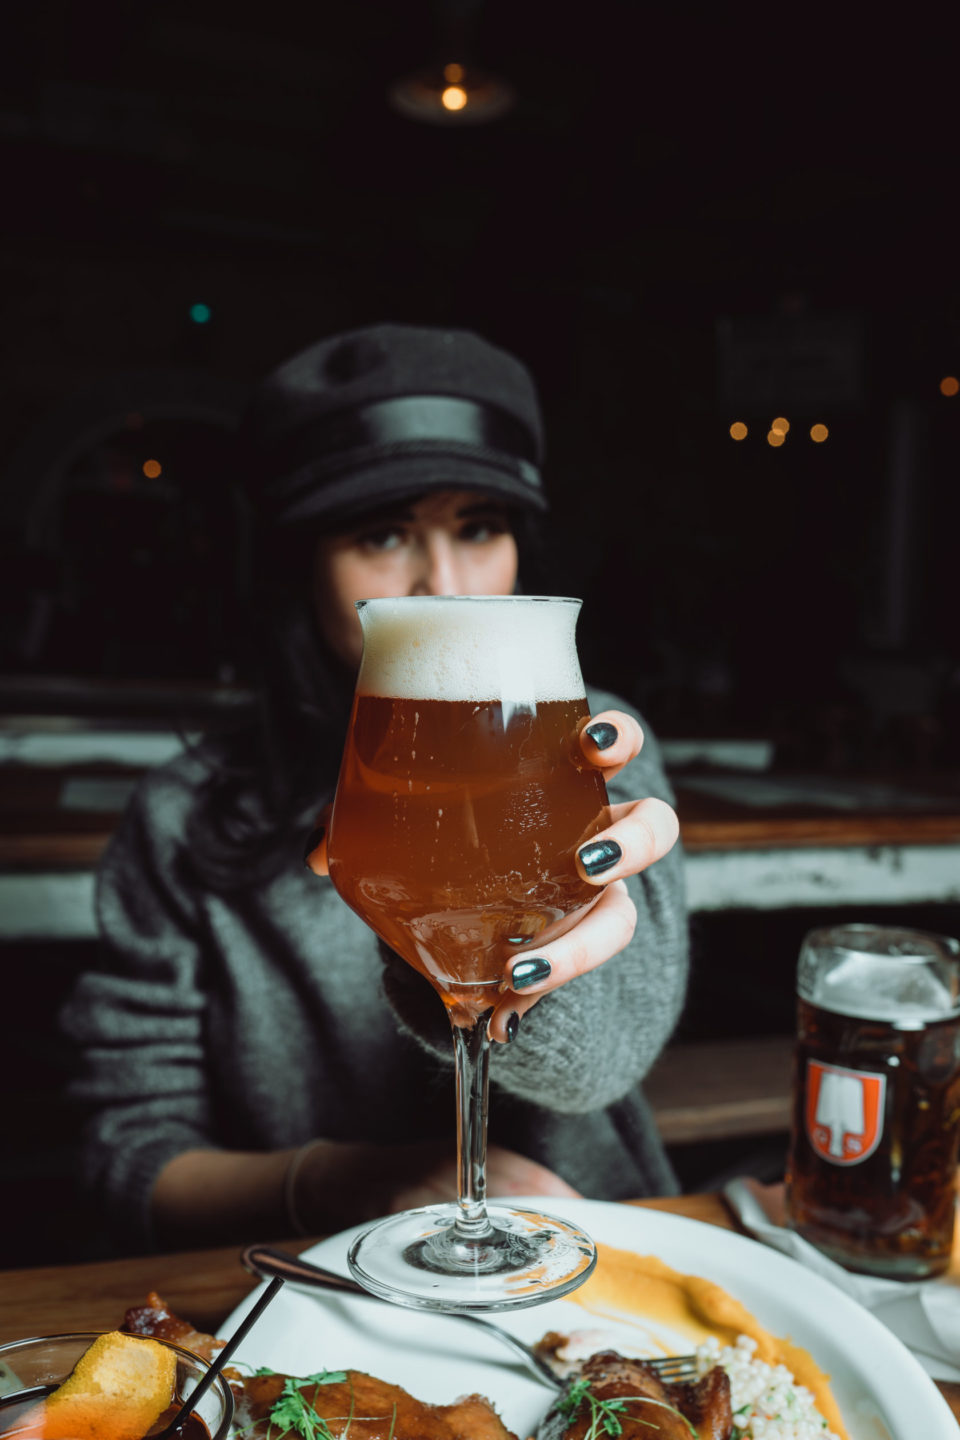 Top 7 Spots for Beer in Jersey City